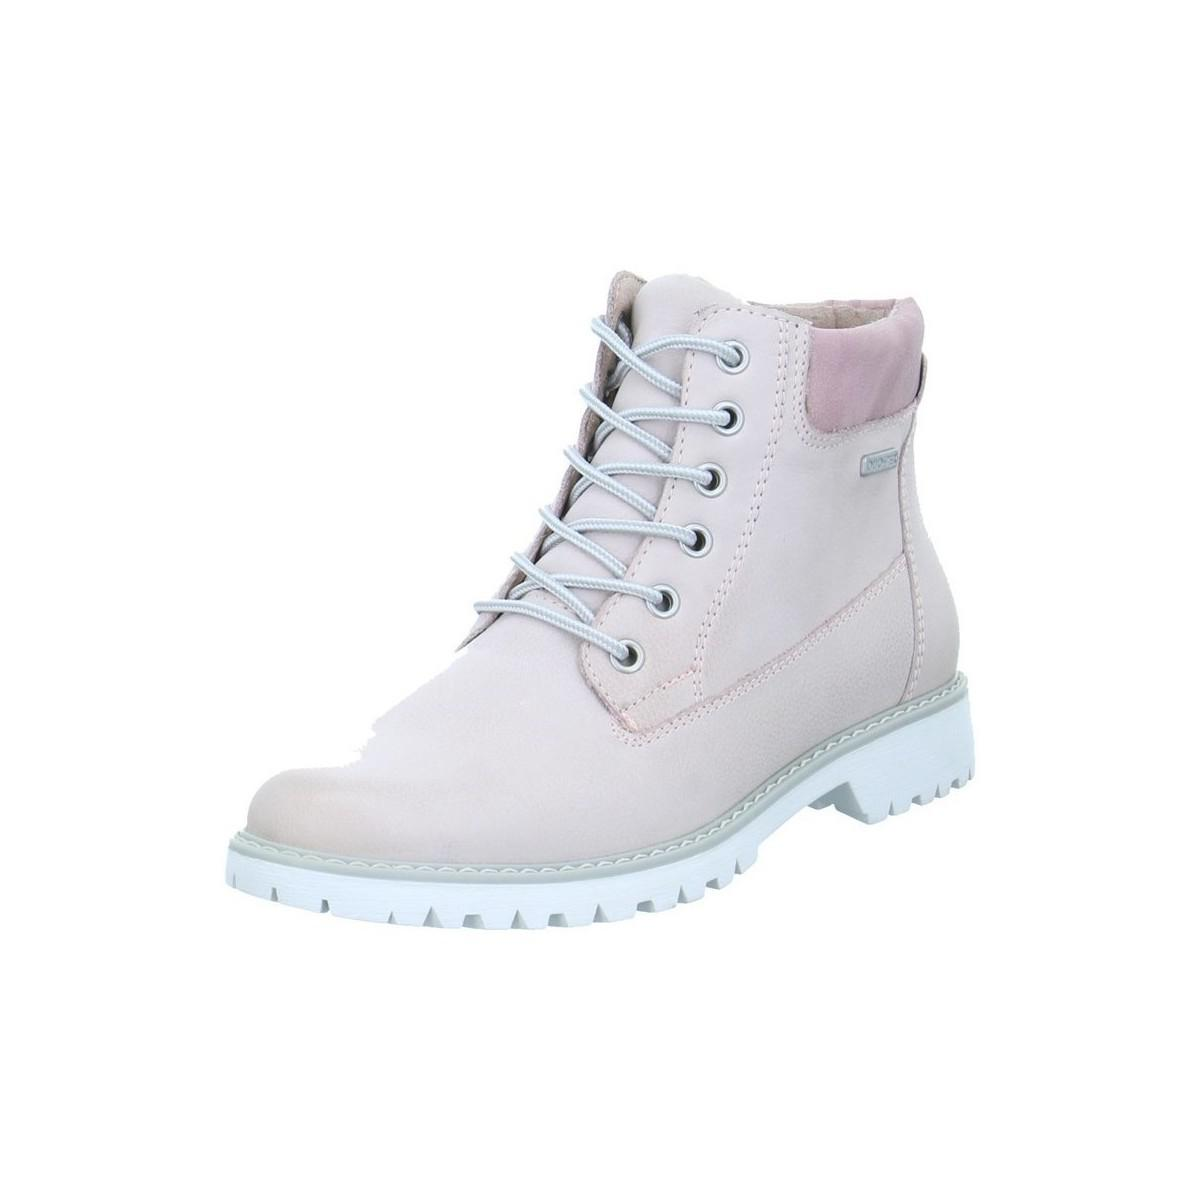 Tamaris Veronia women's Low Ankle Boots in Visa Payment Online Comfortable Sale Online Outlet 2018 fywEUgo28